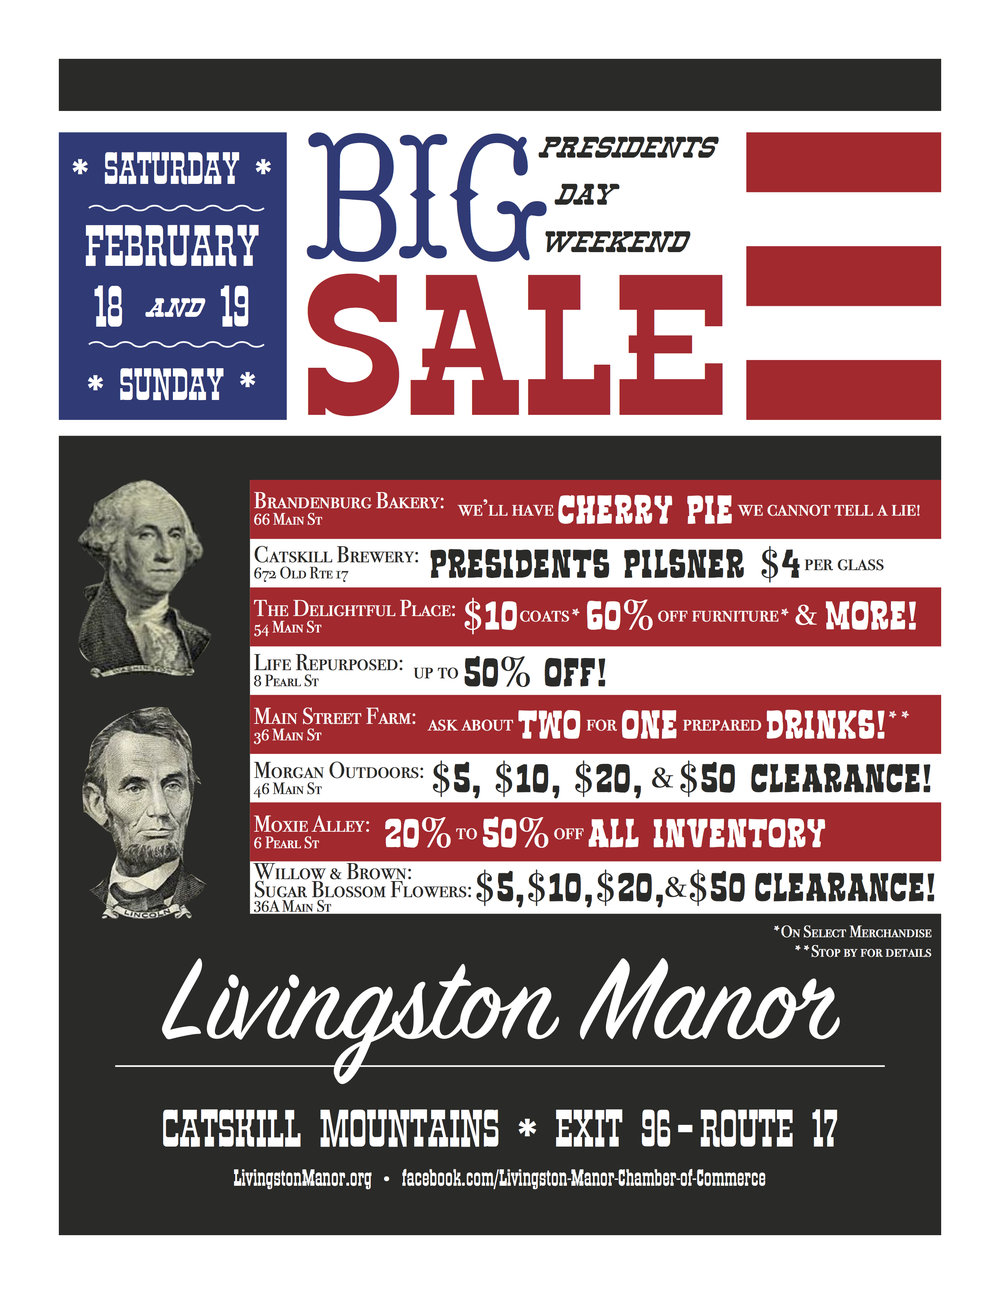 Presidents Day Weekend Big Sale